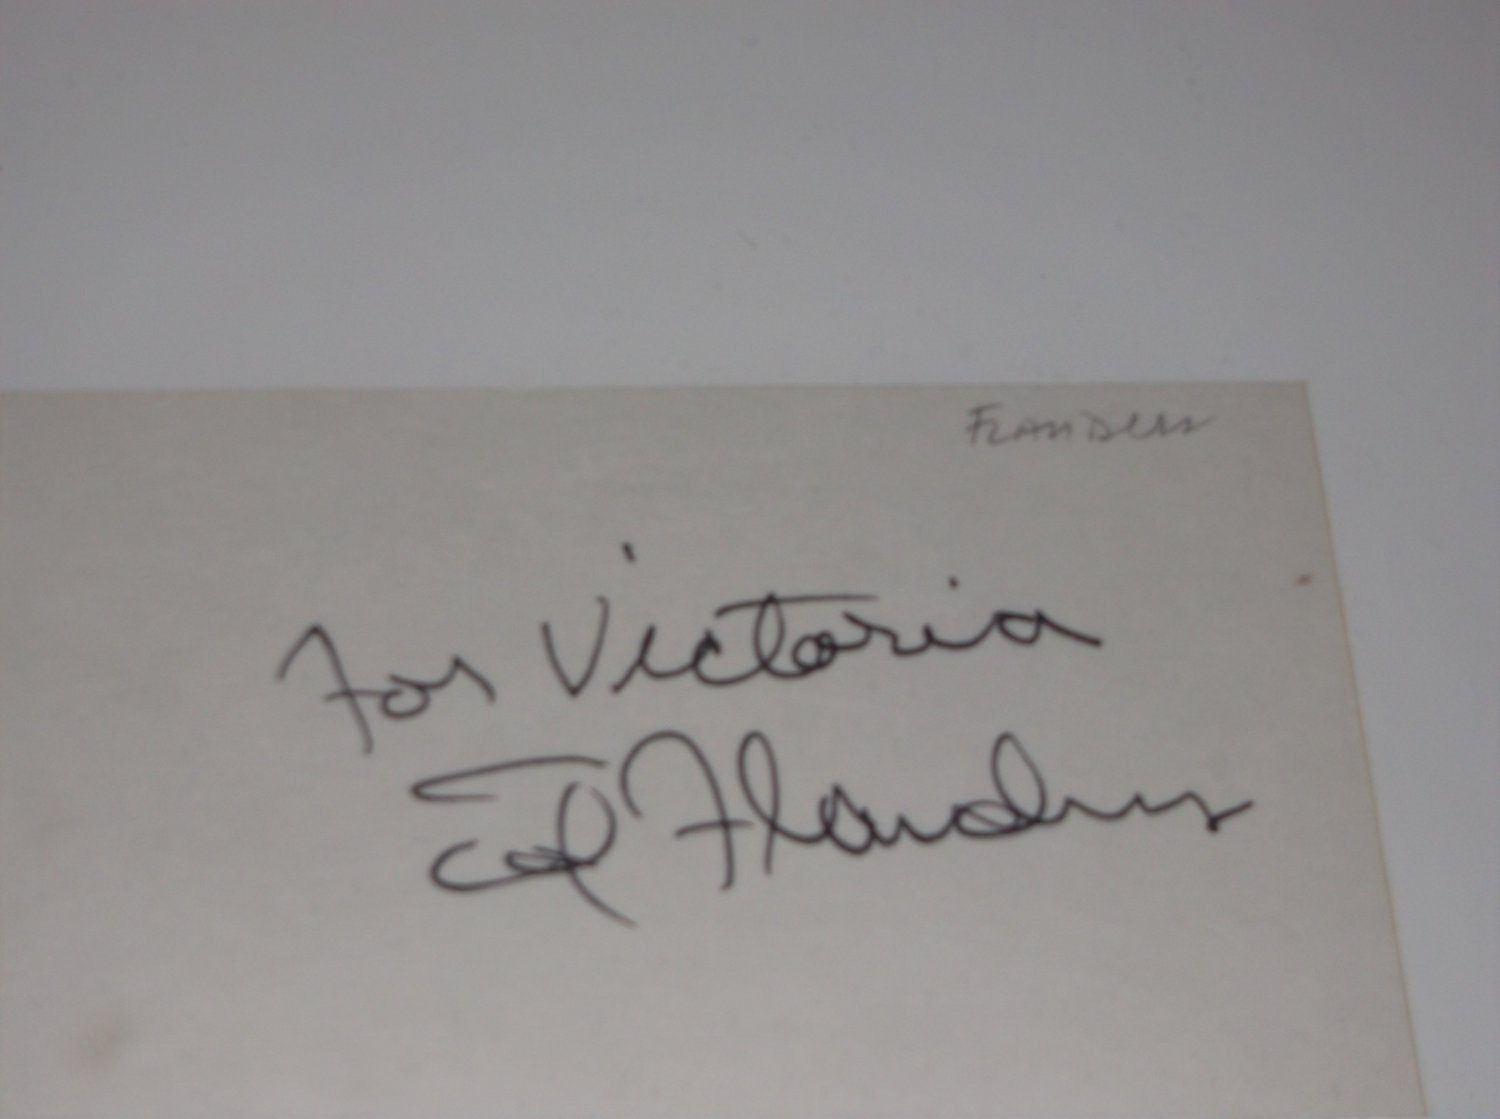 Ed Flanders (1934-1995) signed inscribed 3x5 card